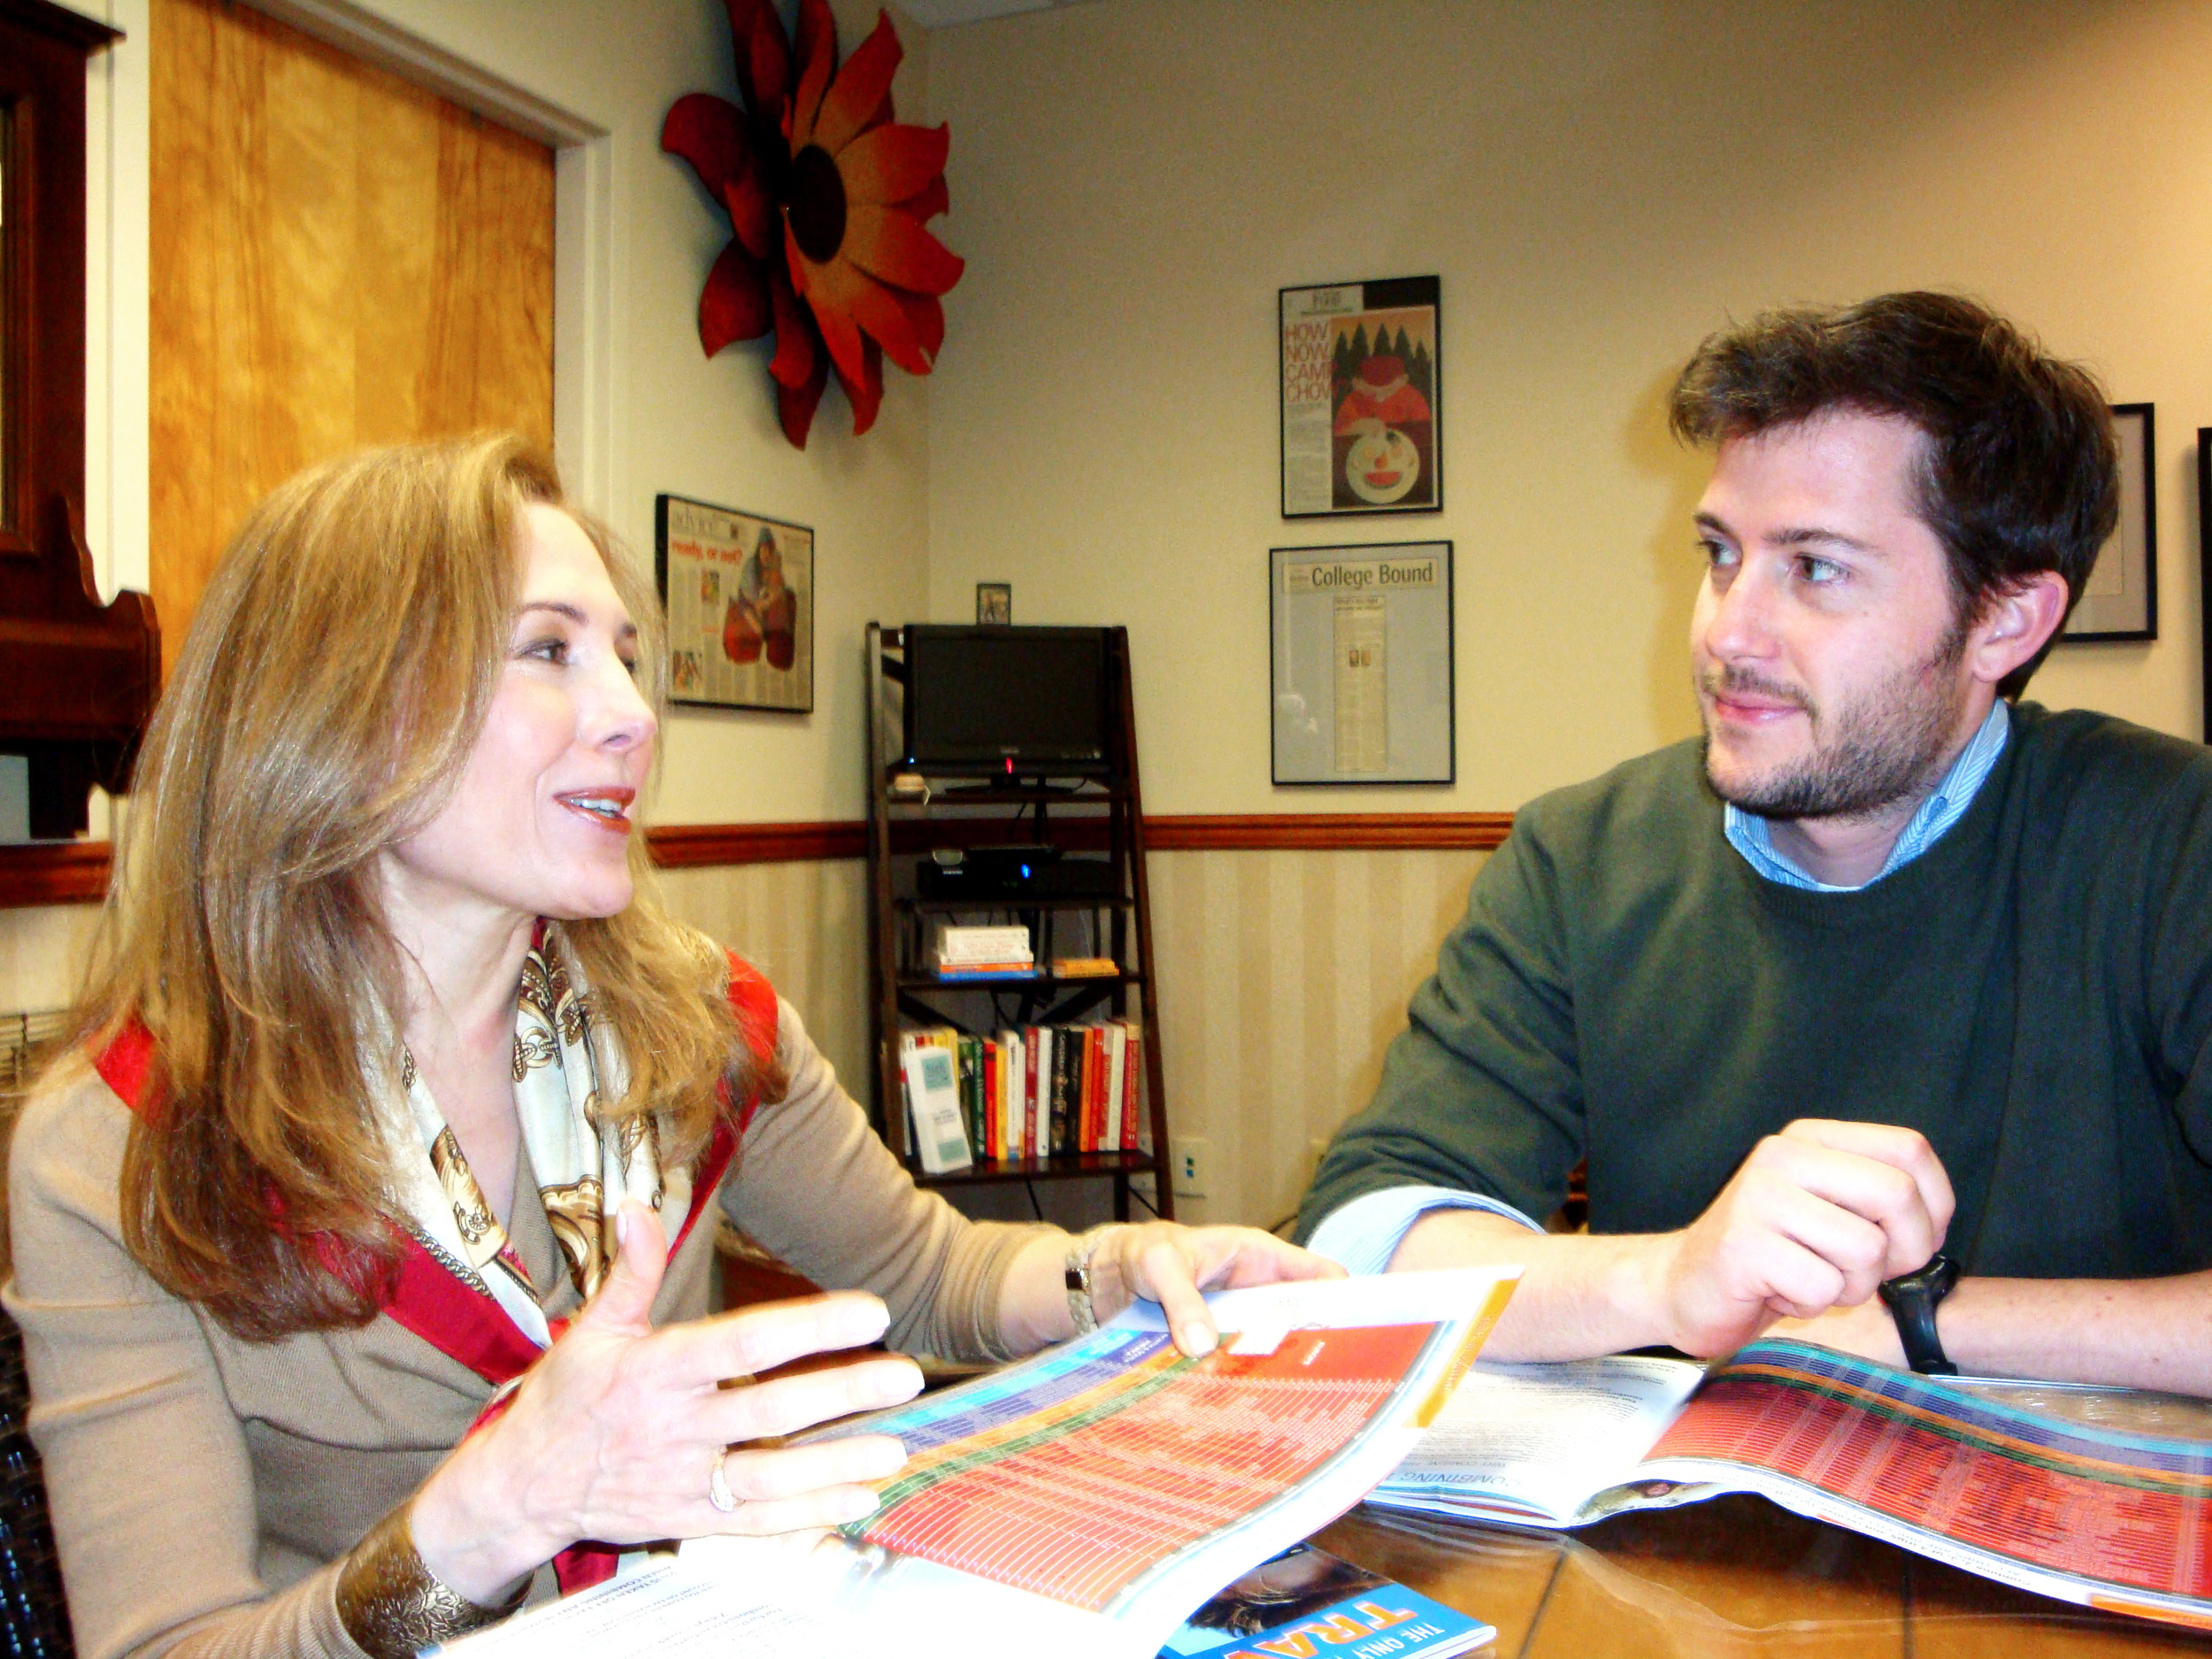 Jill sits down with a teen program director in her office.